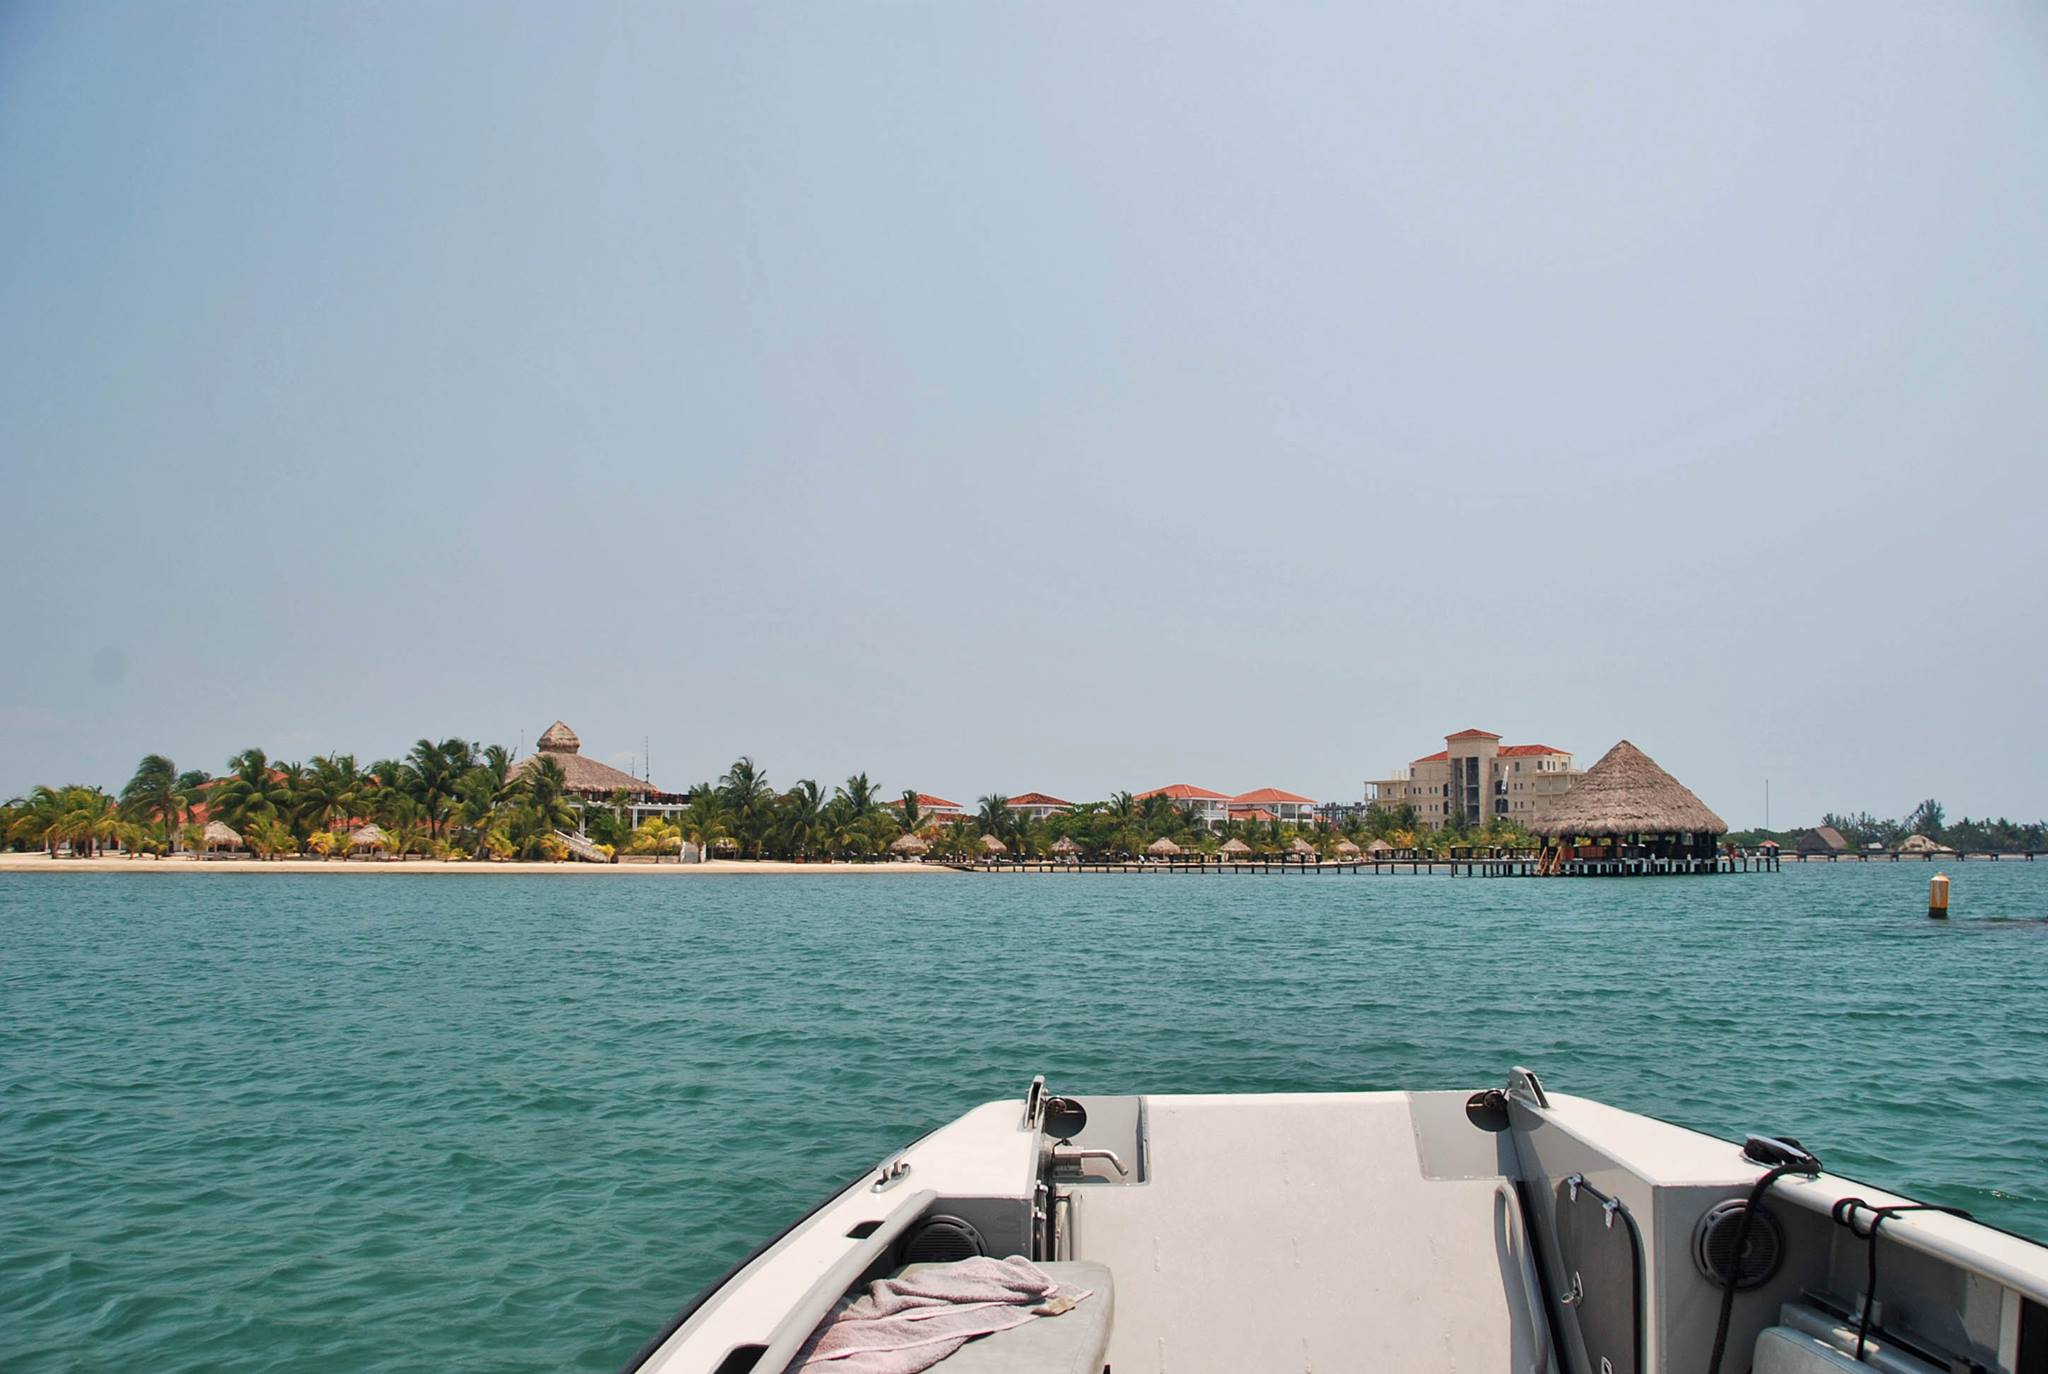 resort view from boat tpr.jpg